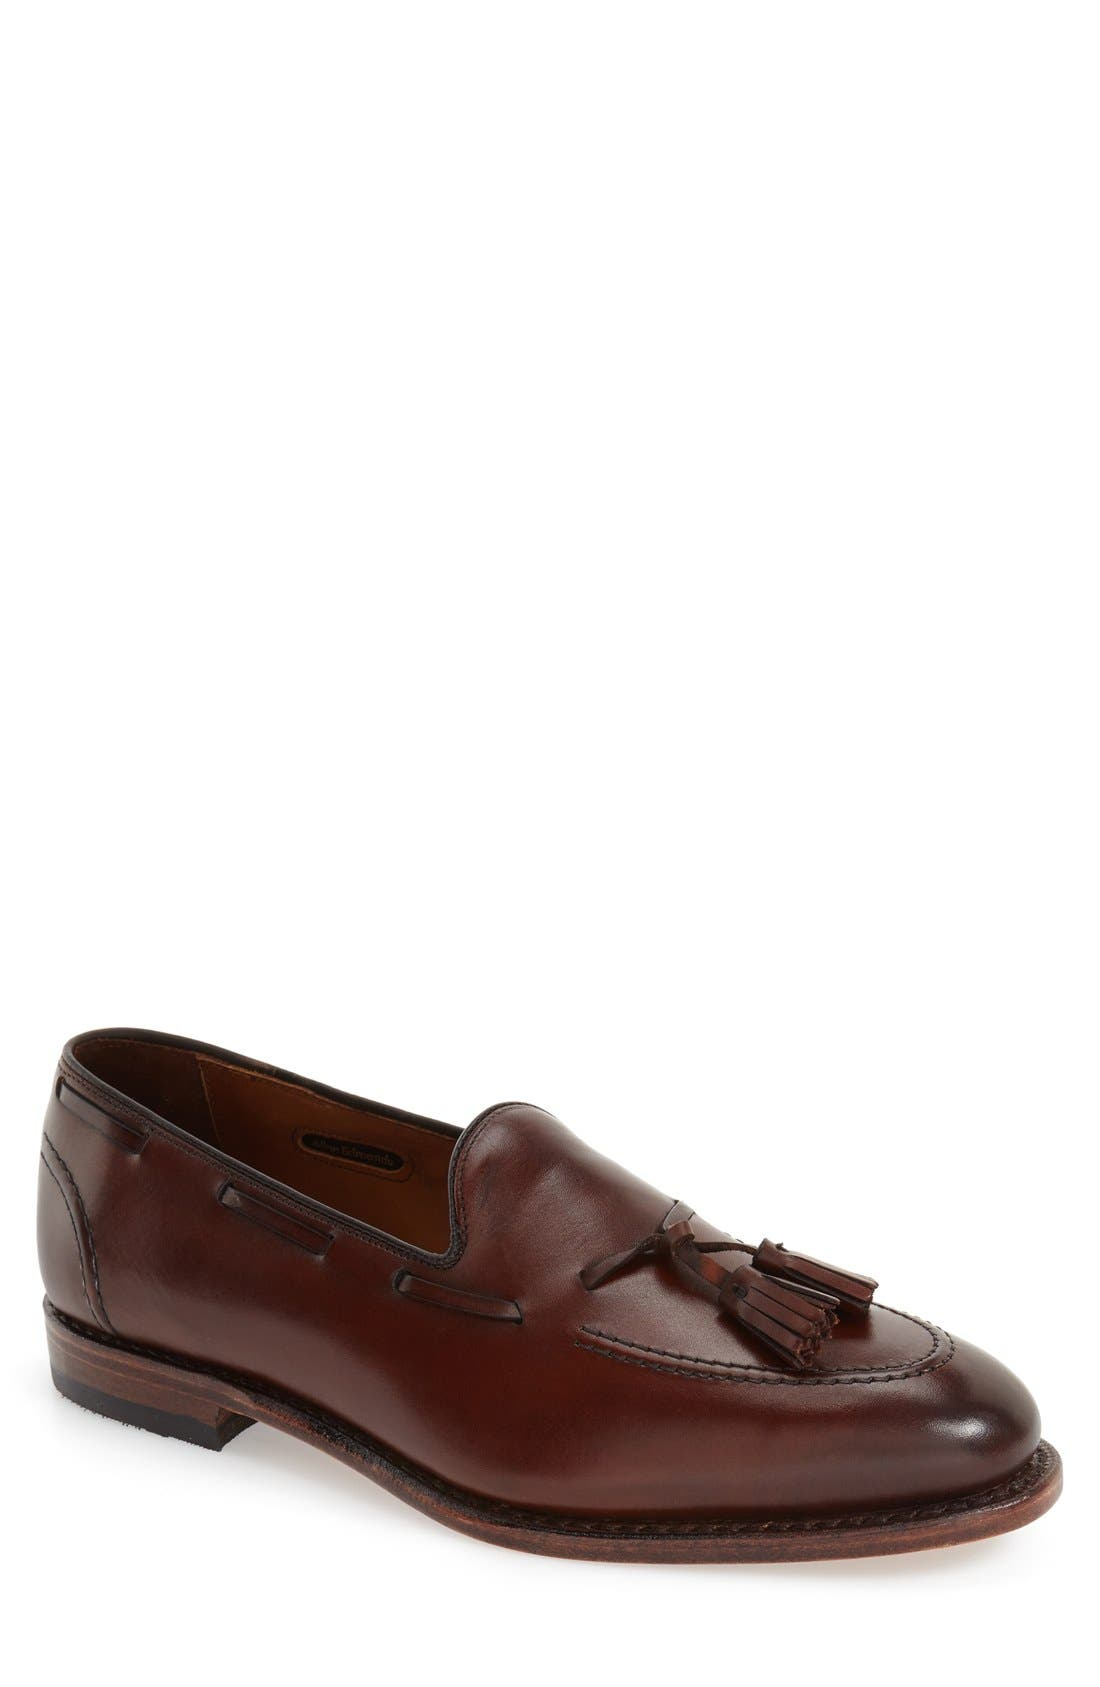 'Acheson' Tassel Loafer,                         Main,                         color, Dark Chili Burnished